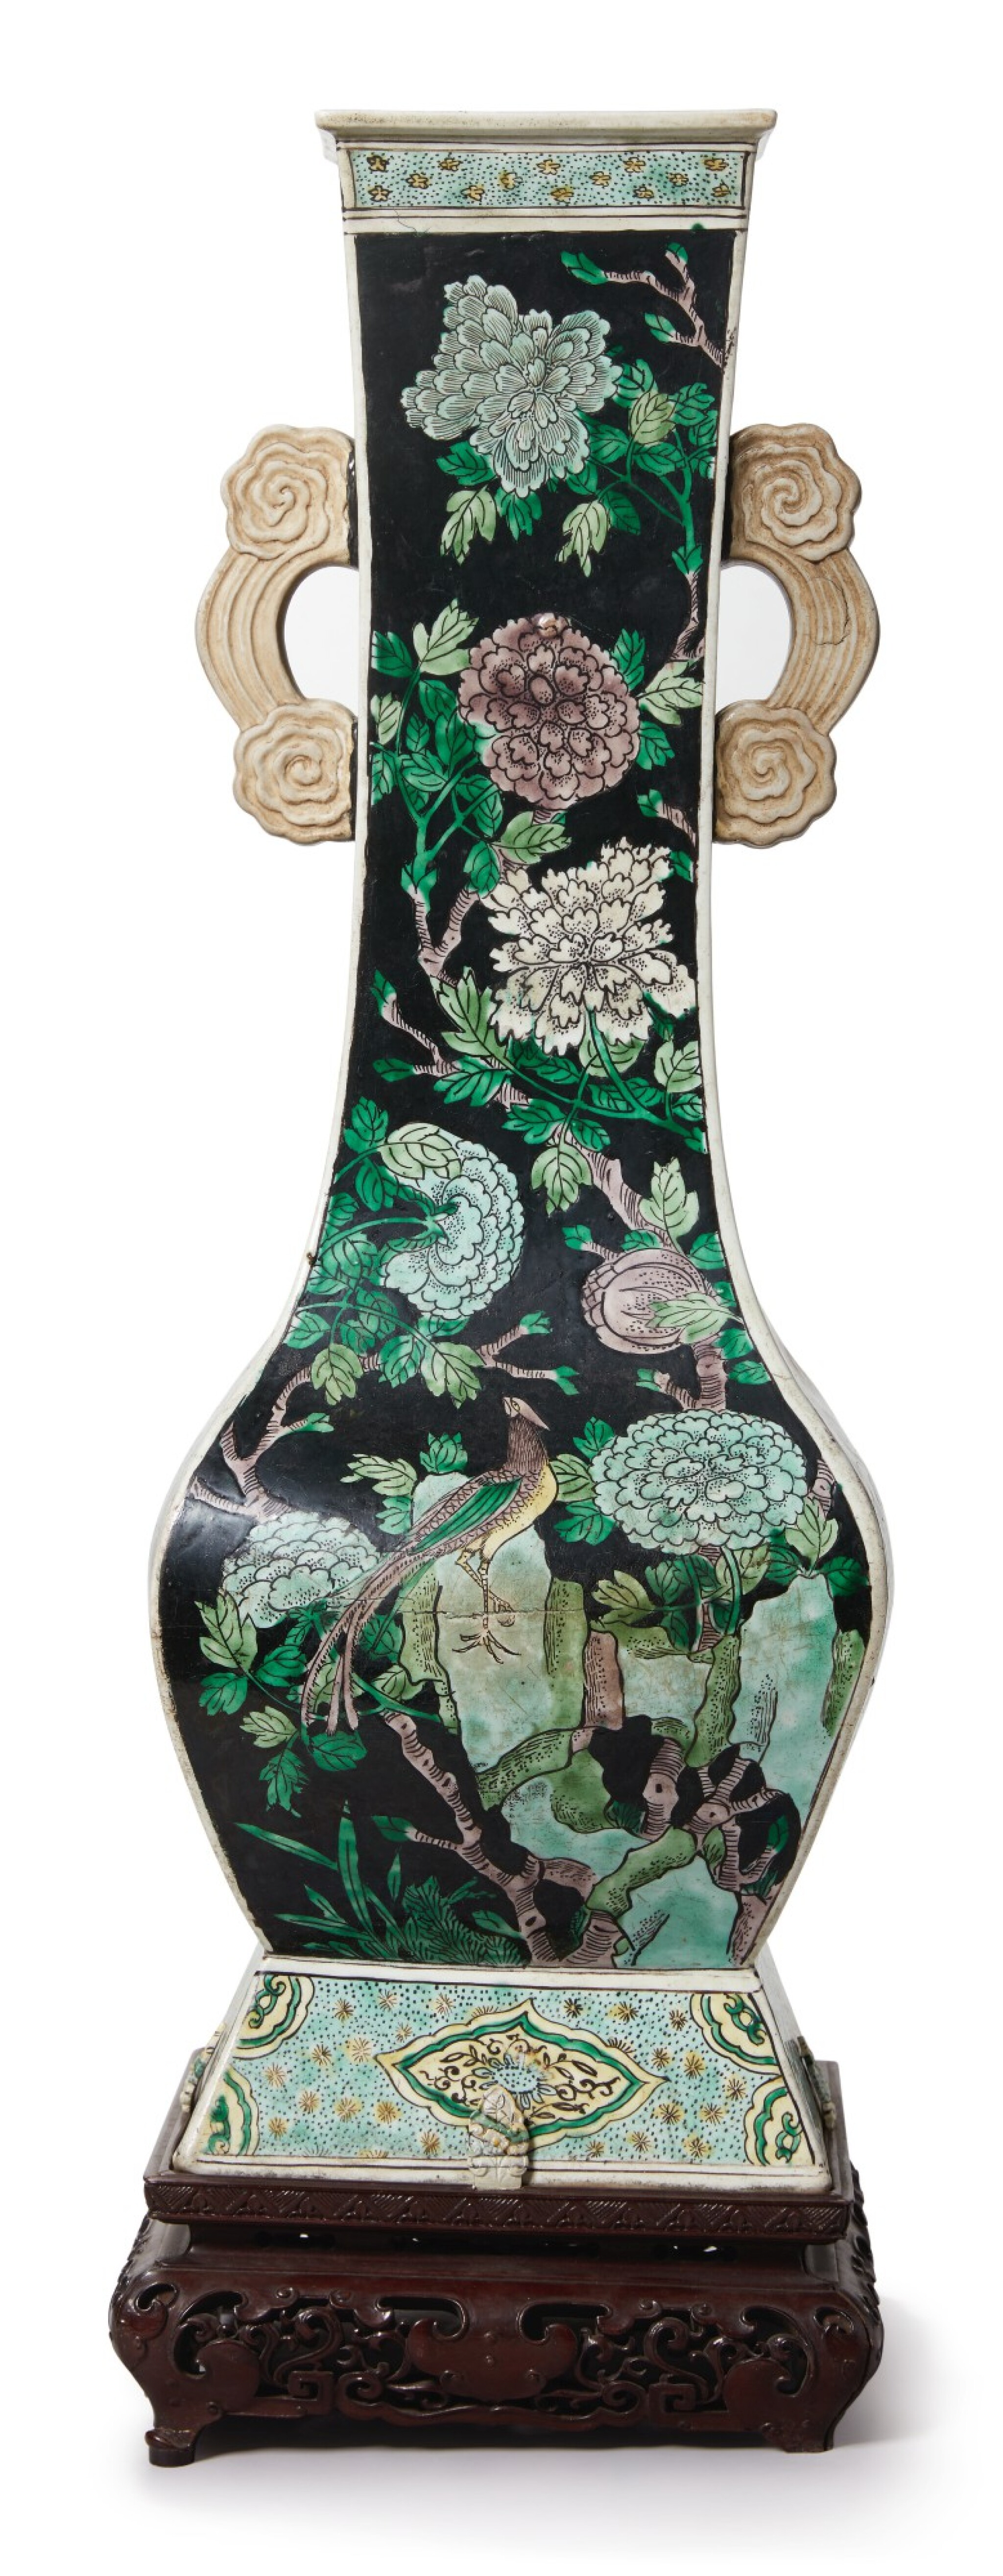 View 1 of Lot 1029.  A FAMILLE-NOIRE 'BIRD AND FLOWER' FANGHU-FORM VASE, QING DYNASTY, 19TH CENTURY.